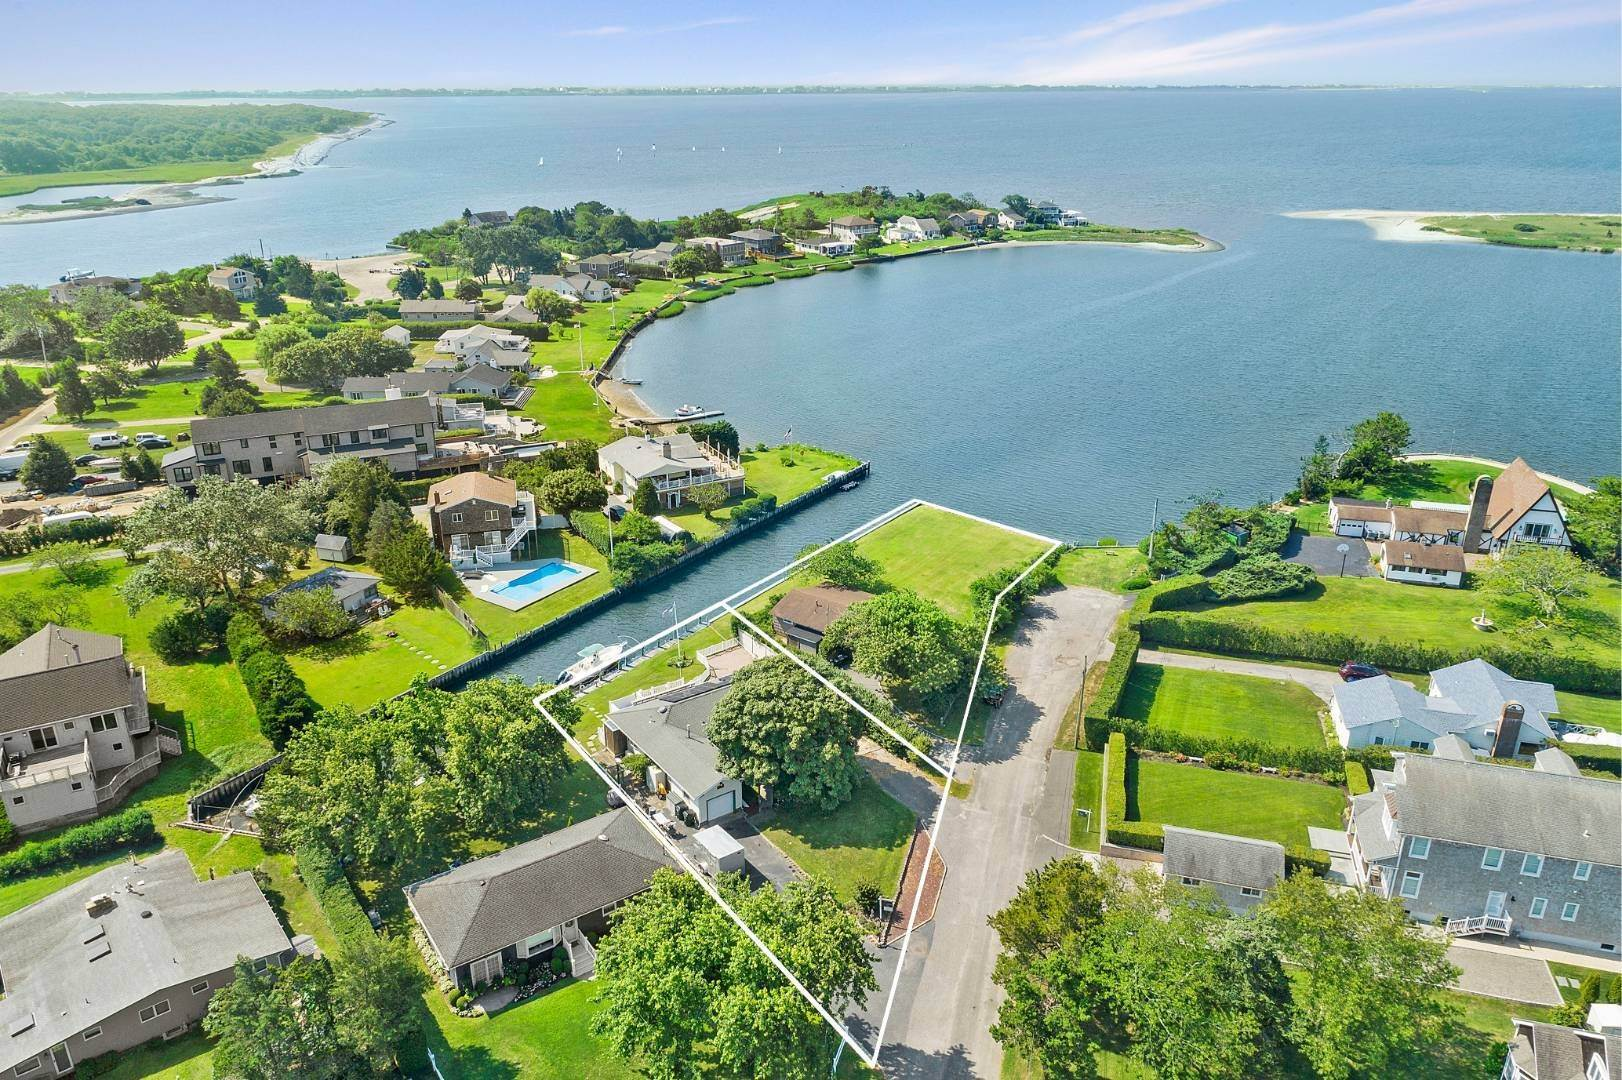 Land for Sale at Southampton Waterfront With Bulkhead And Dock 16 & 20 Middle Pond Lane, Southampton, NY 11968